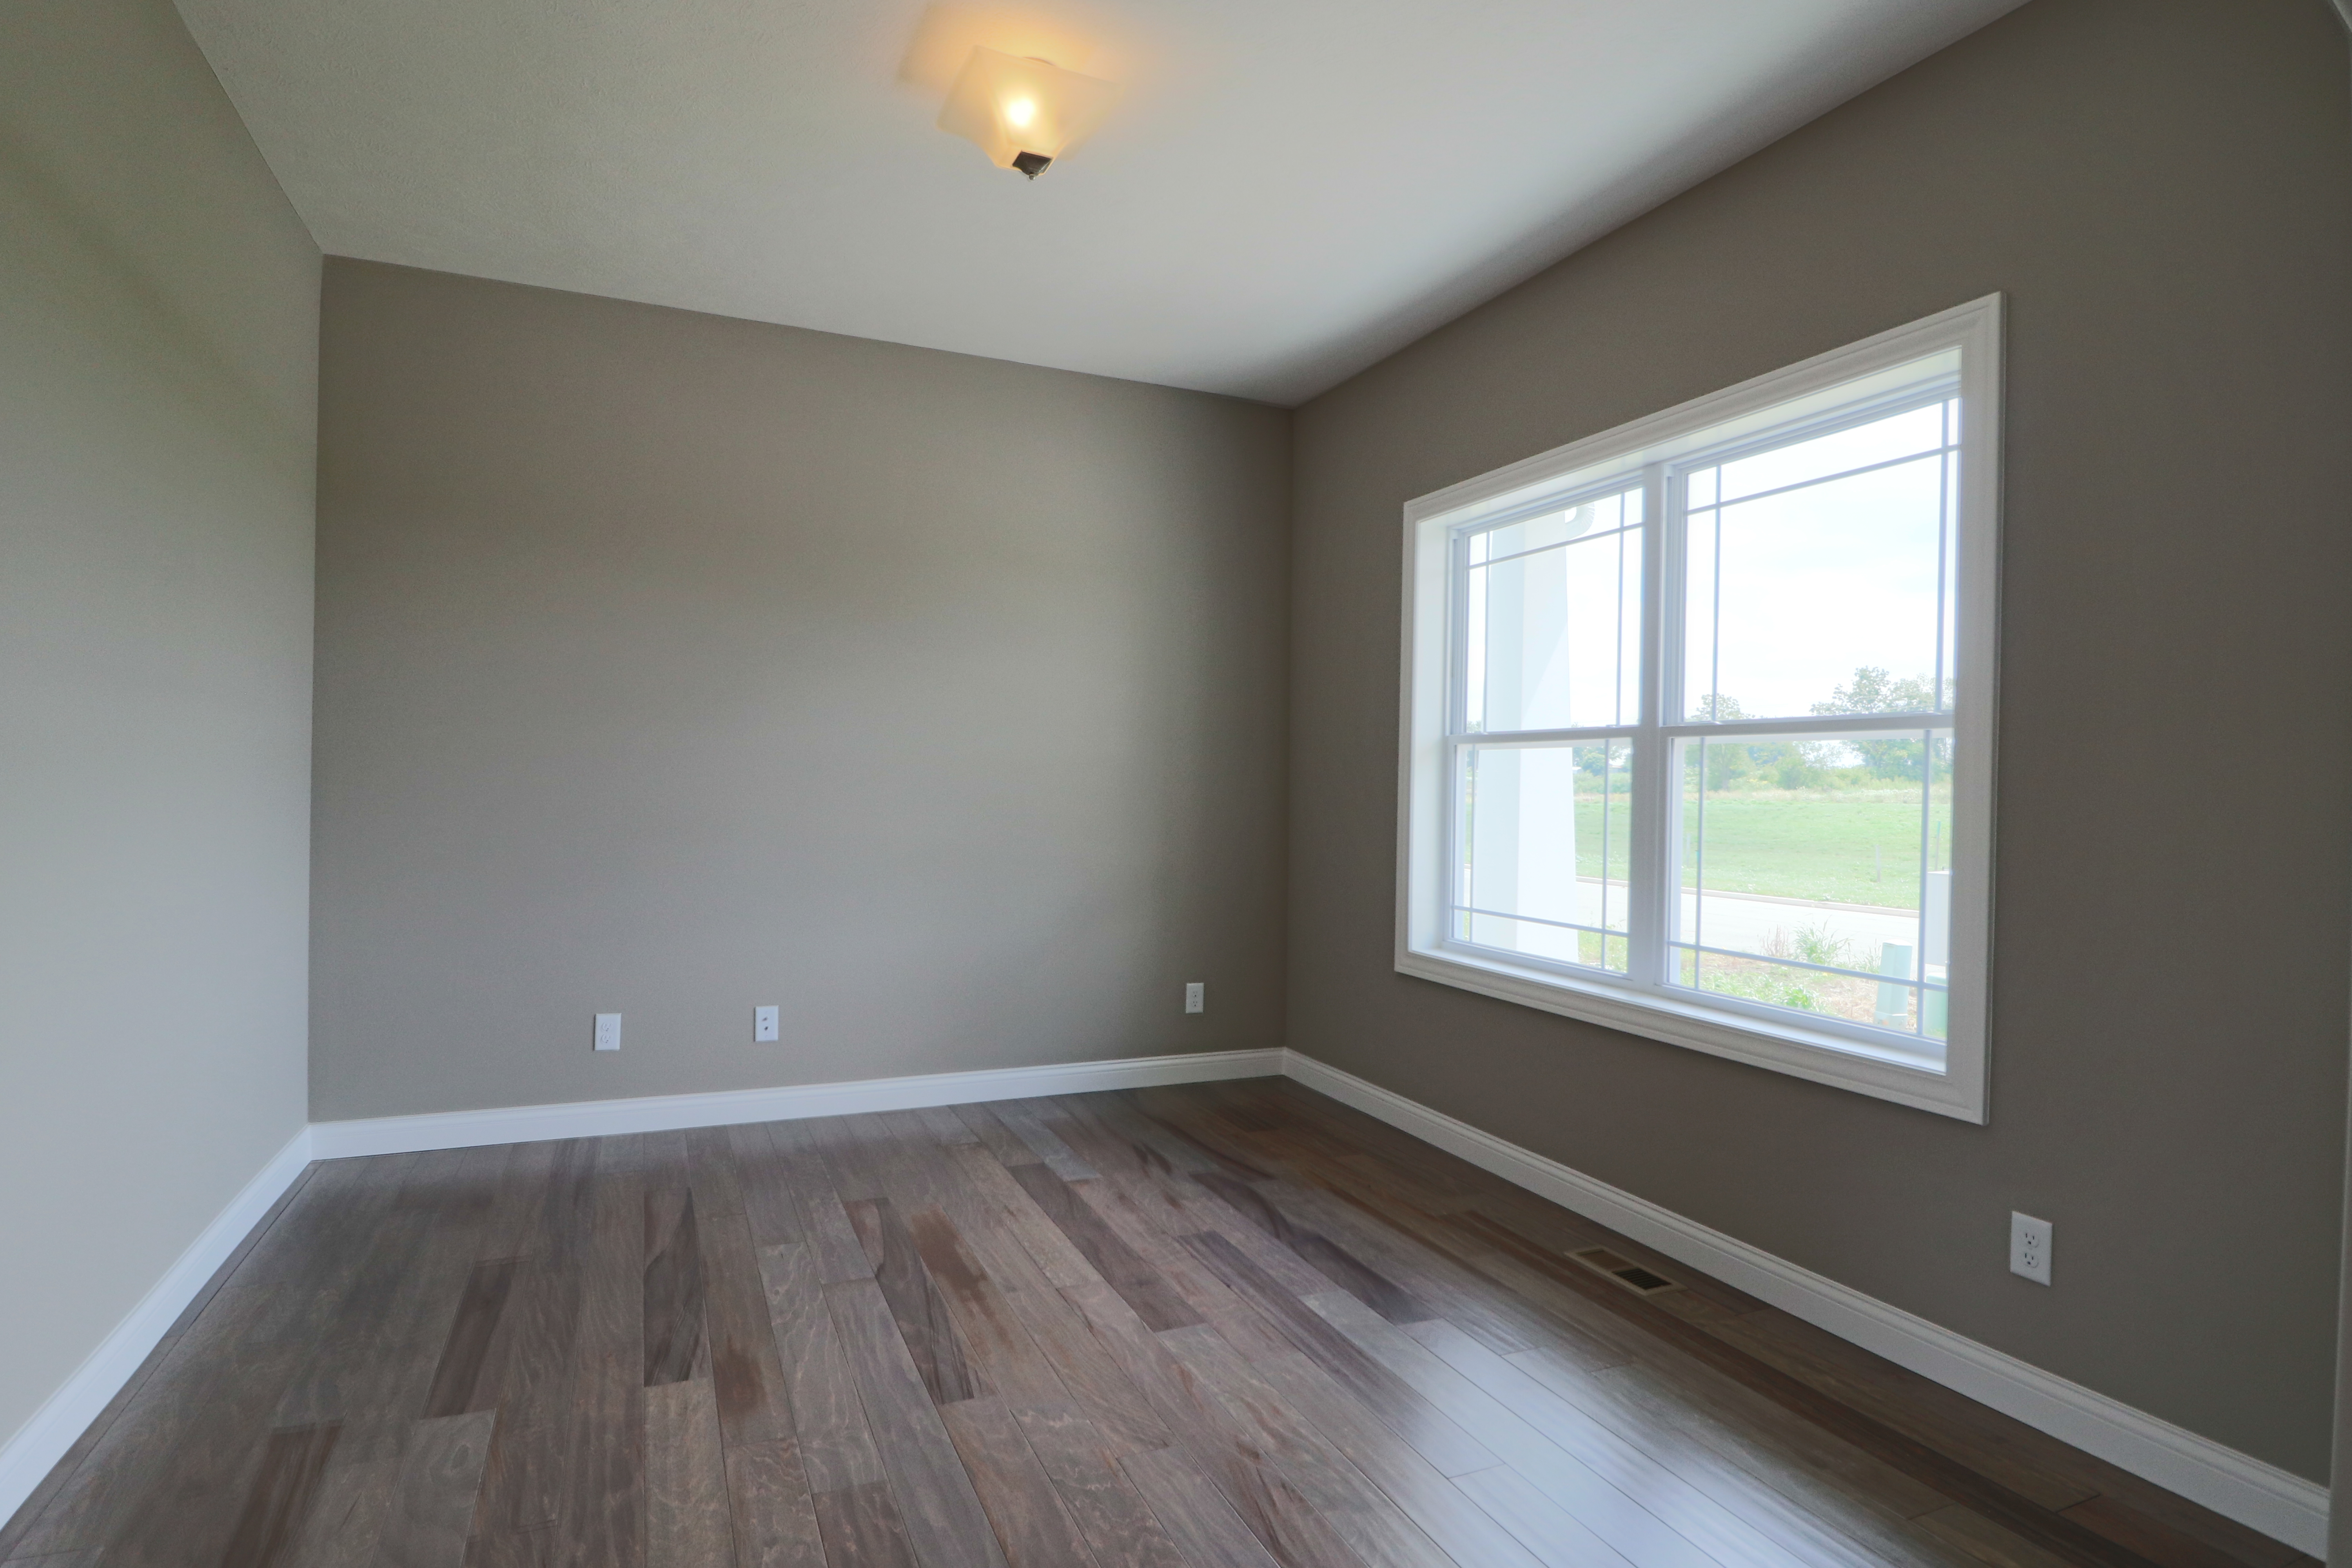 House for sale in the Dunlap peoria area room